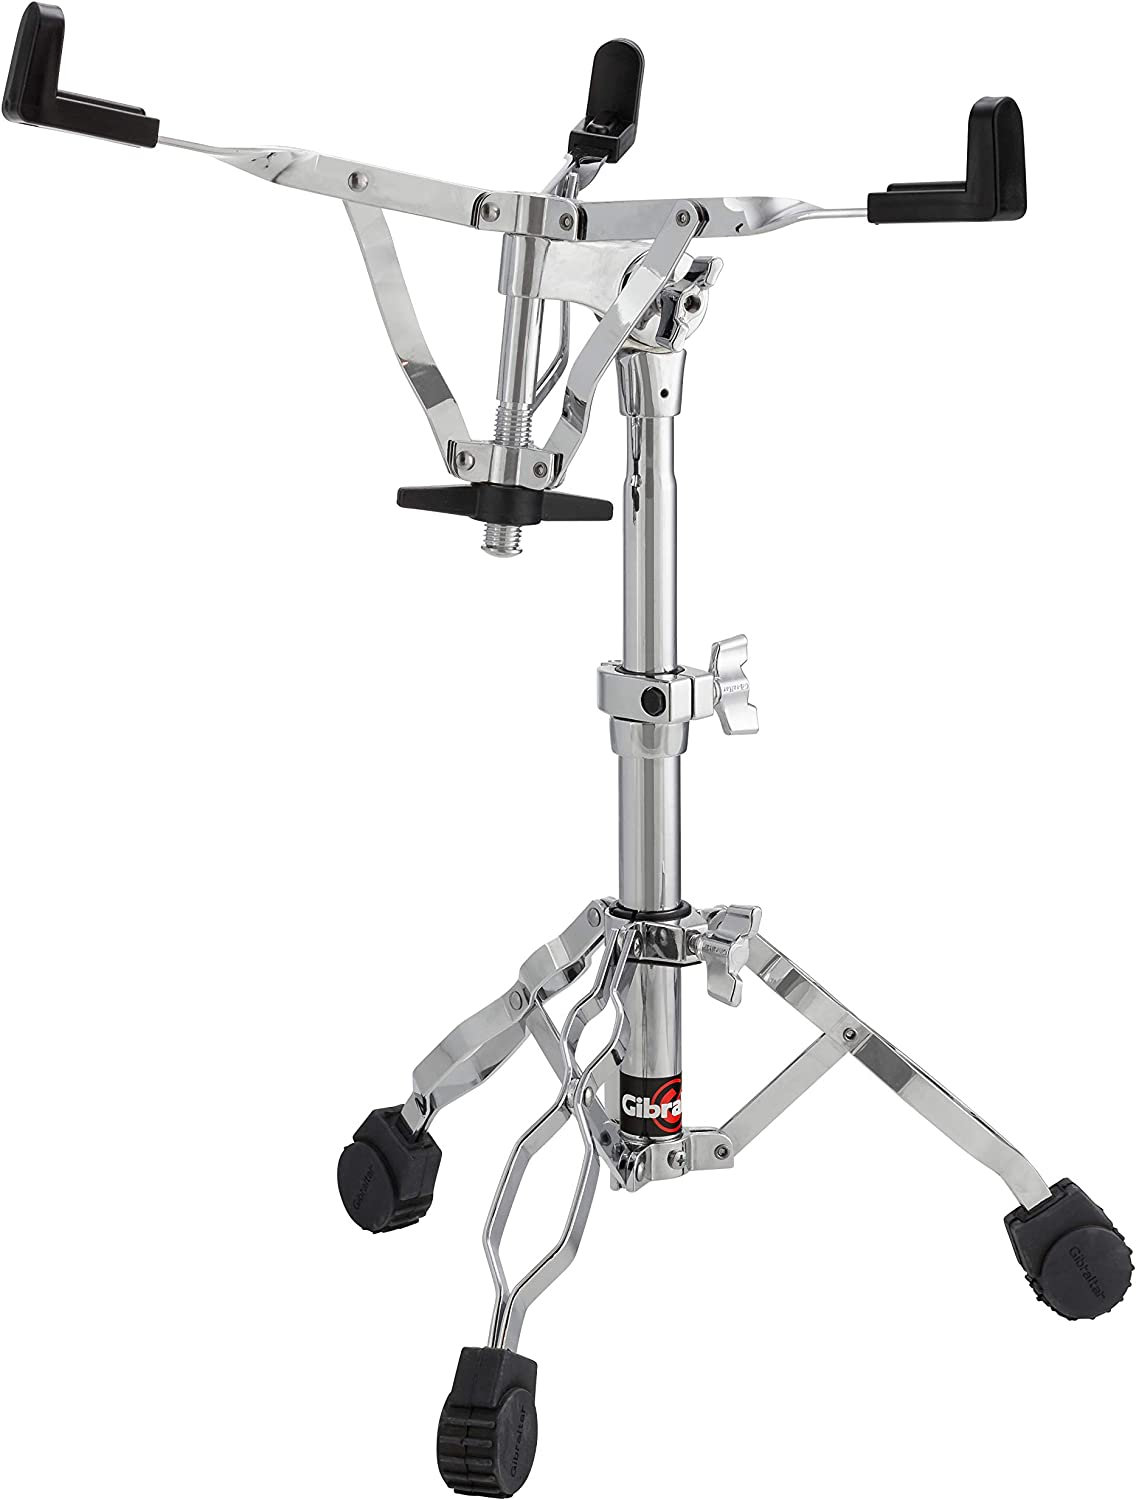 Gibraltar 5706 Medium Weight Double Braced Snare Stand